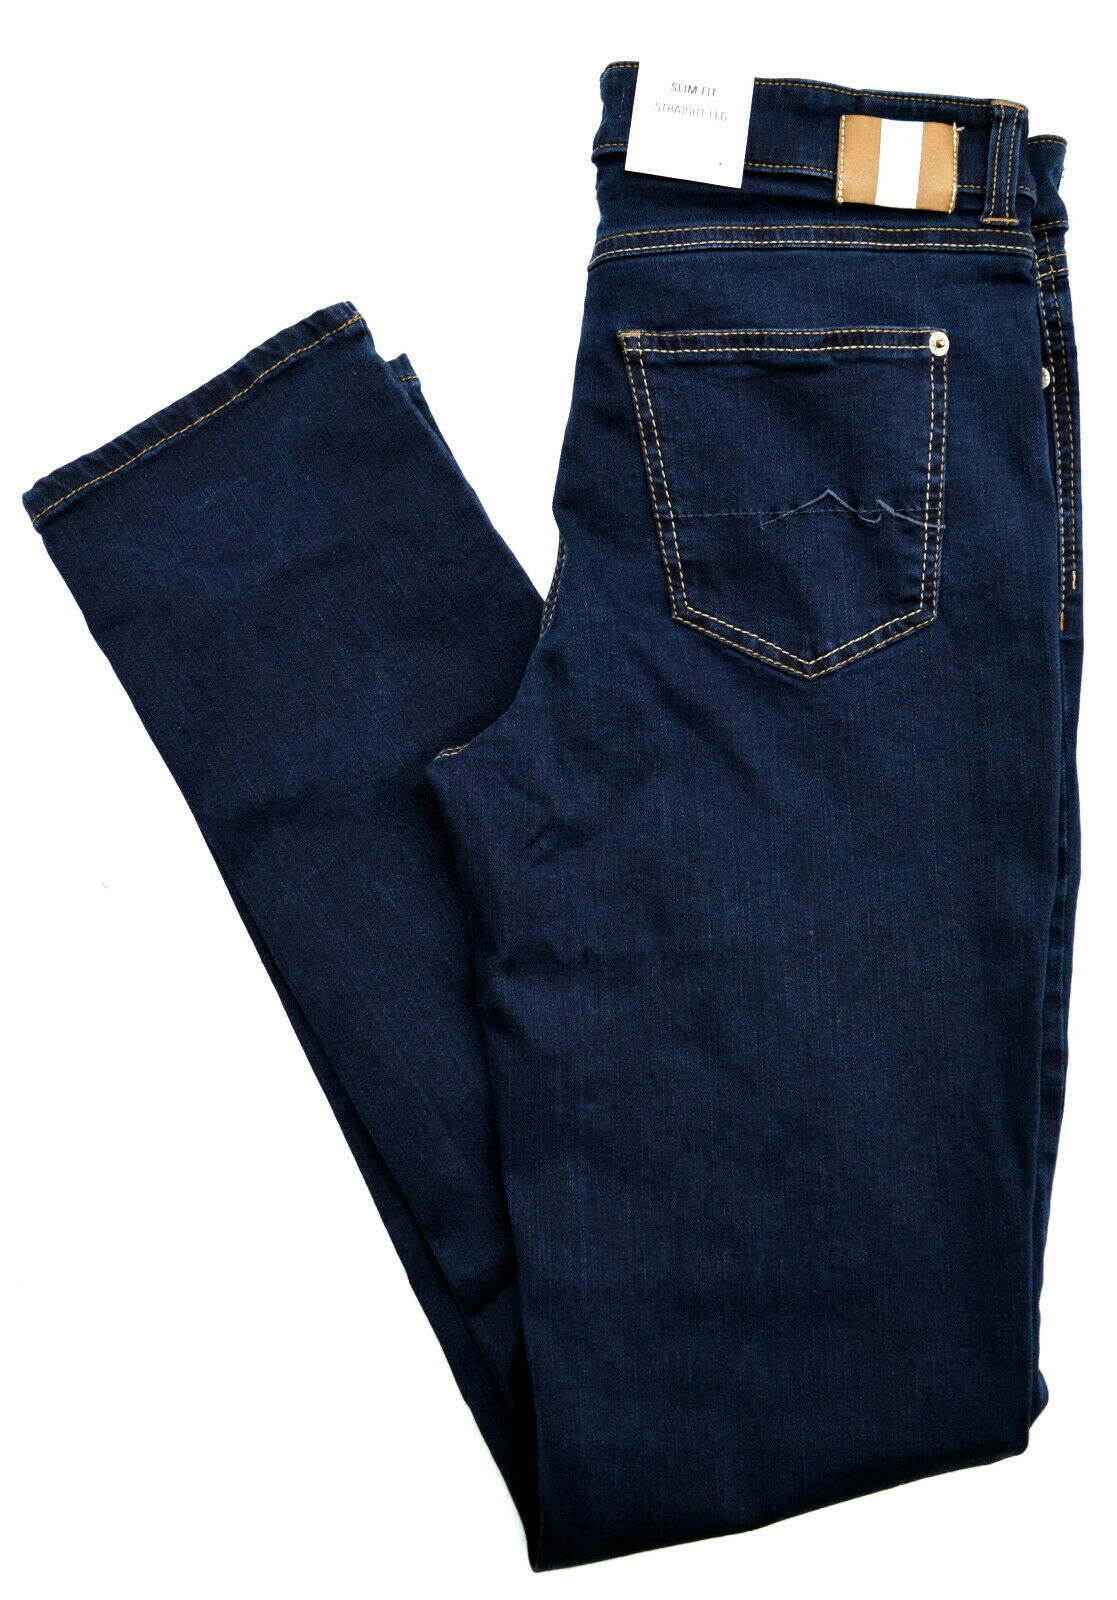 Mac Jeans Angela blå Denis Stretch Dark blå Slim Fit Basic Storlek 36 L34 ny